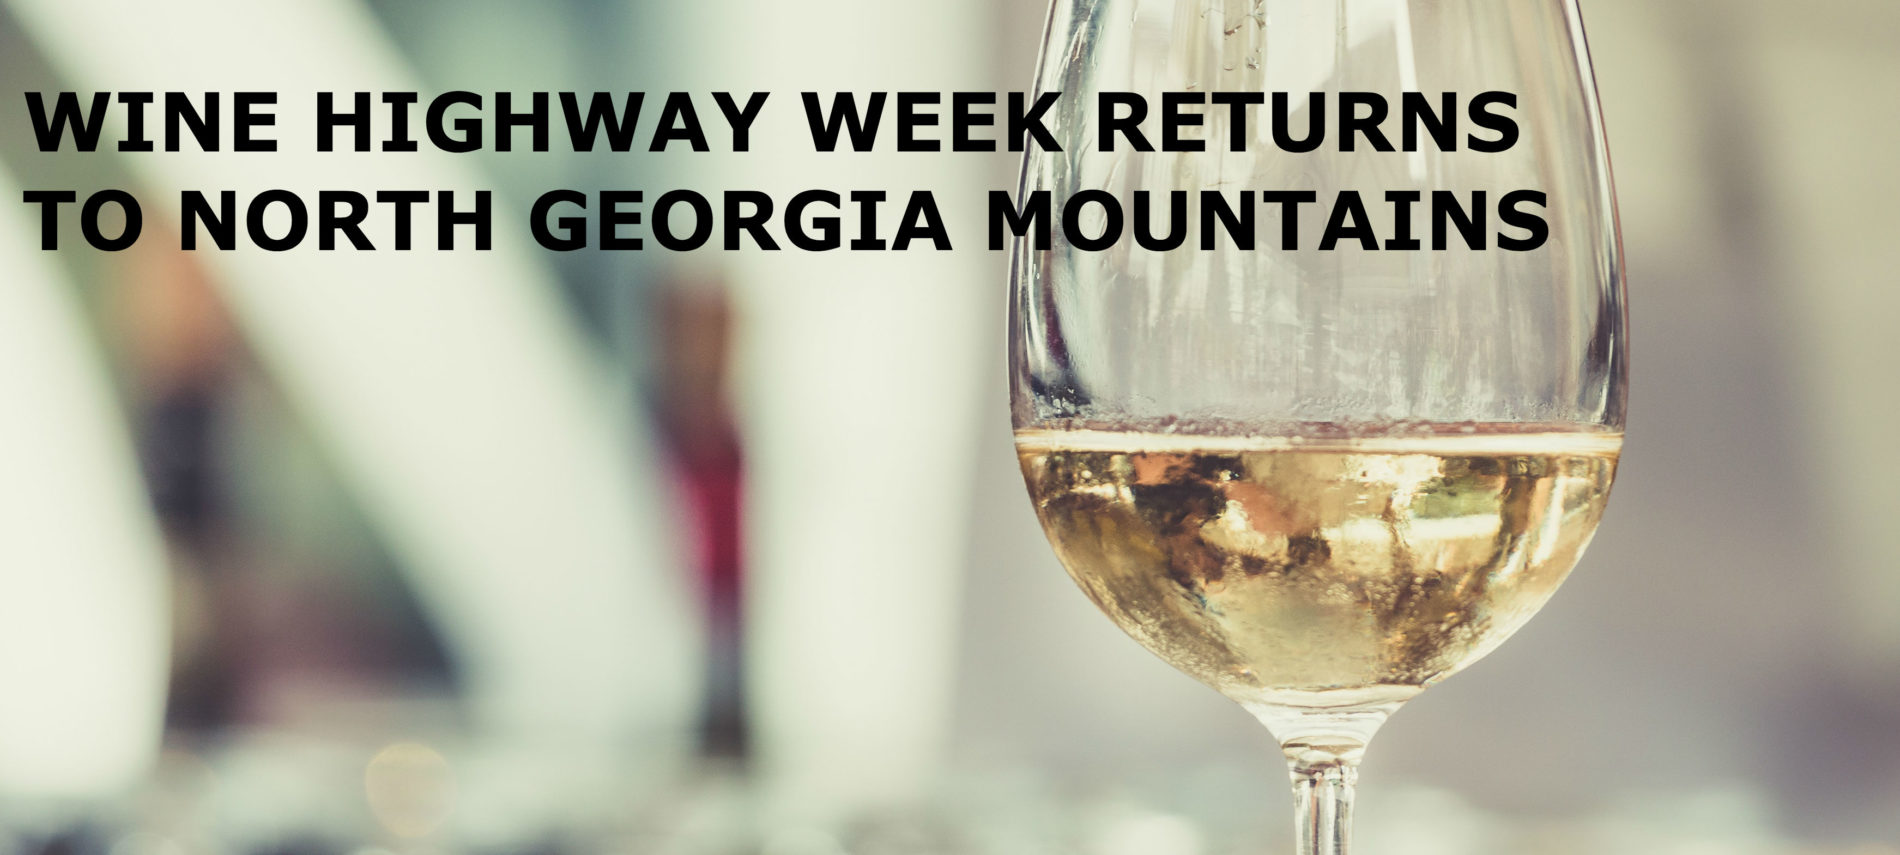 "Stemmed glass with white wine. and background is blurred out. Title: ""Wine highway week returns to north georgia mountains"""